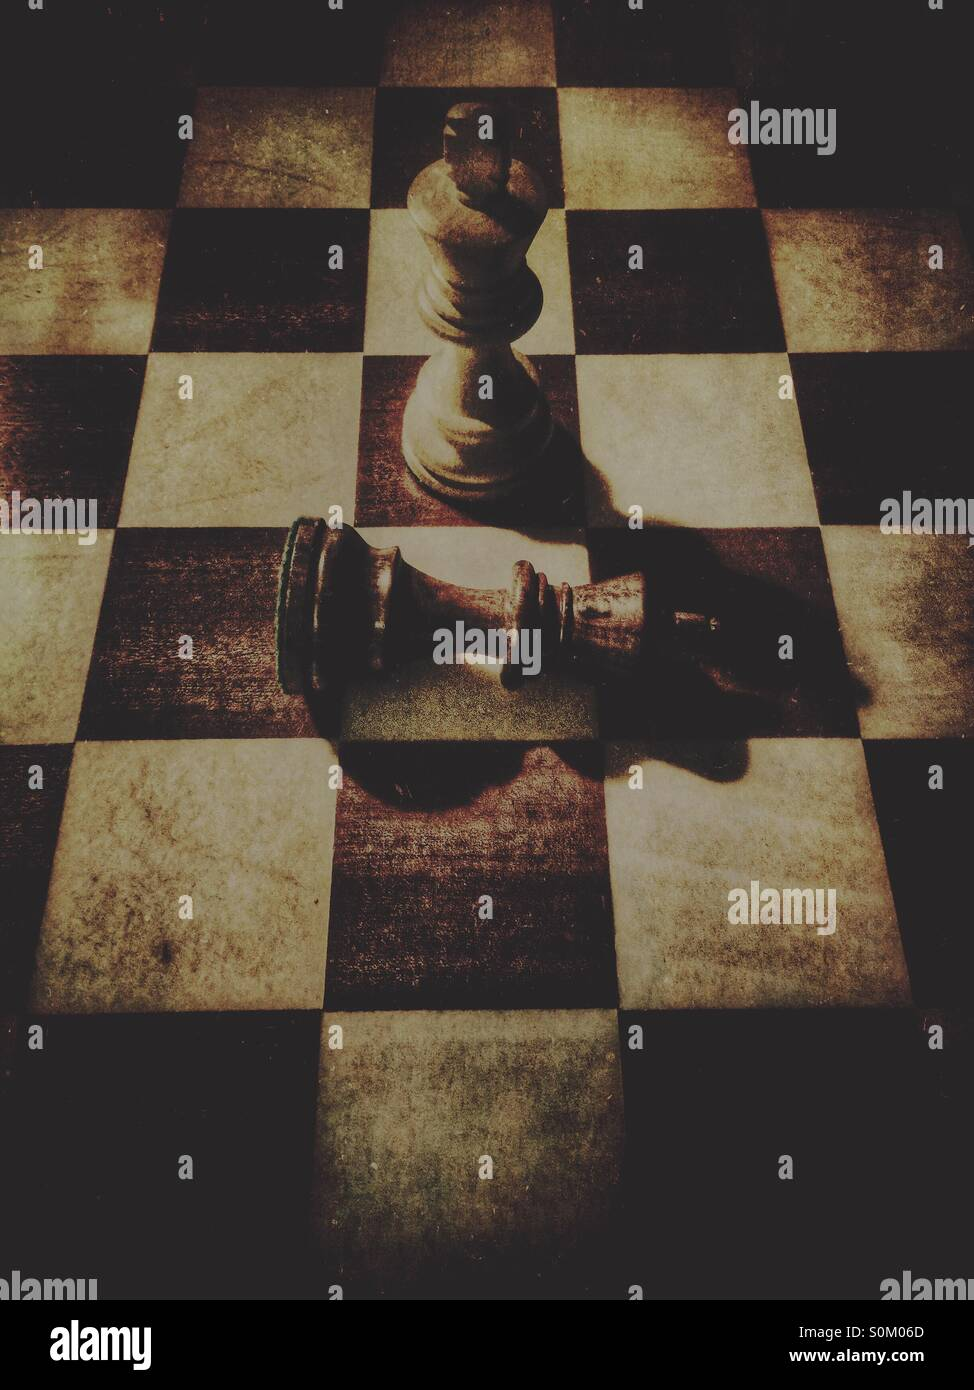 Defeated chess King - Stock Image